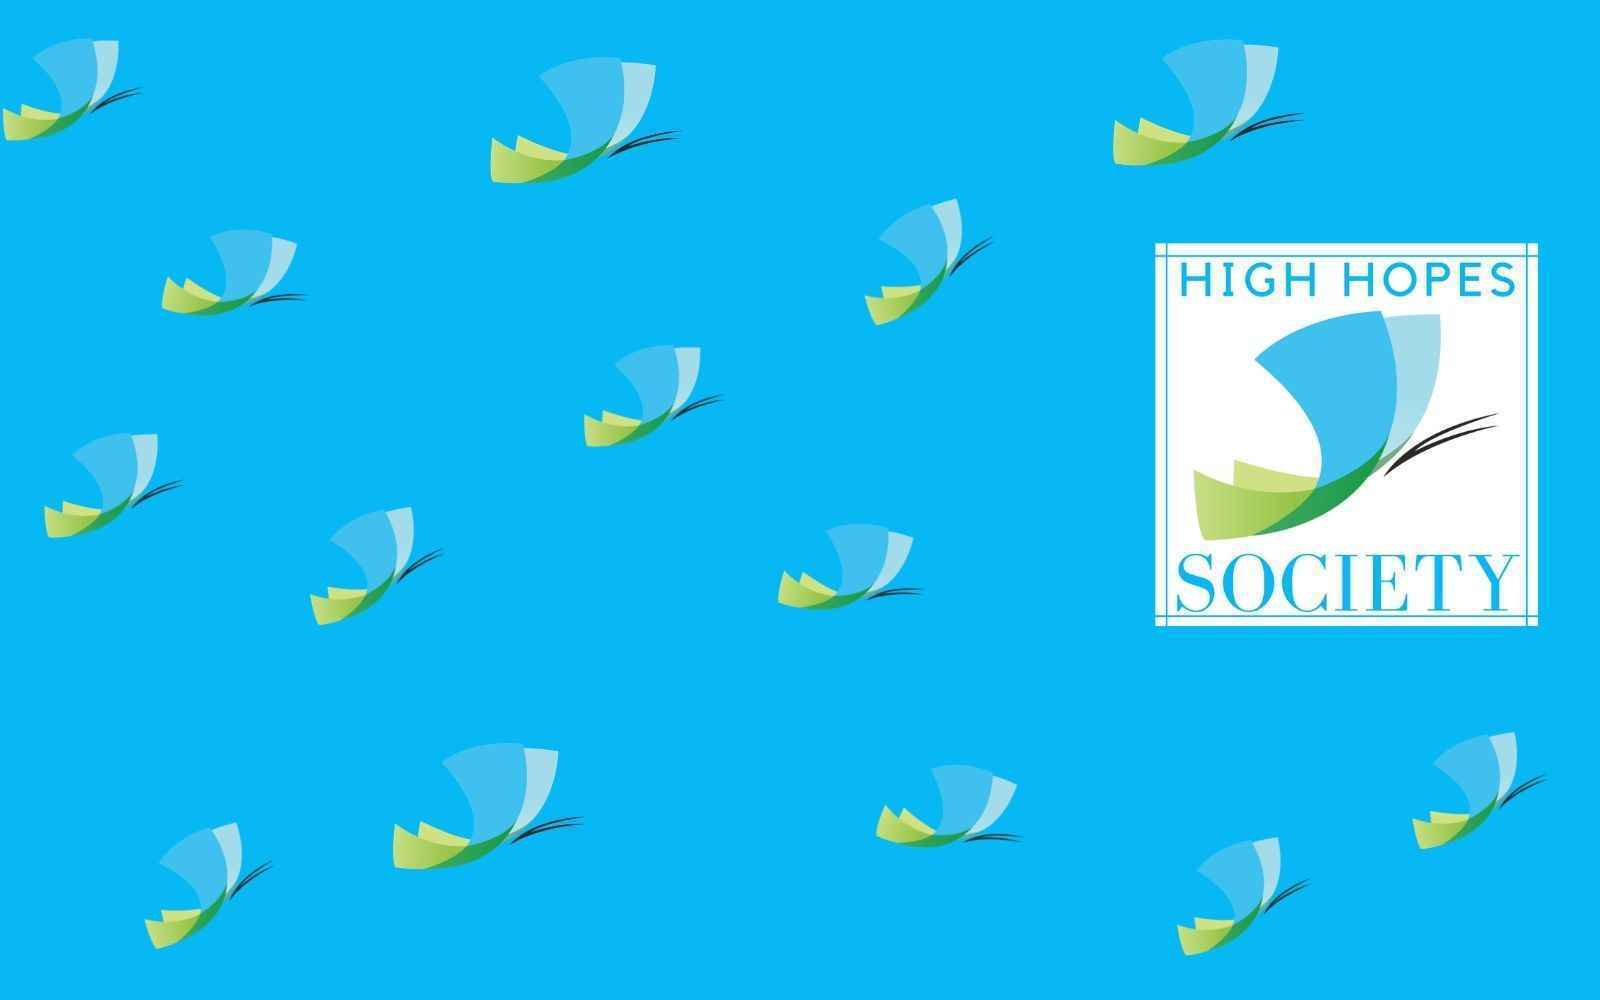 Join High Hopes Society image